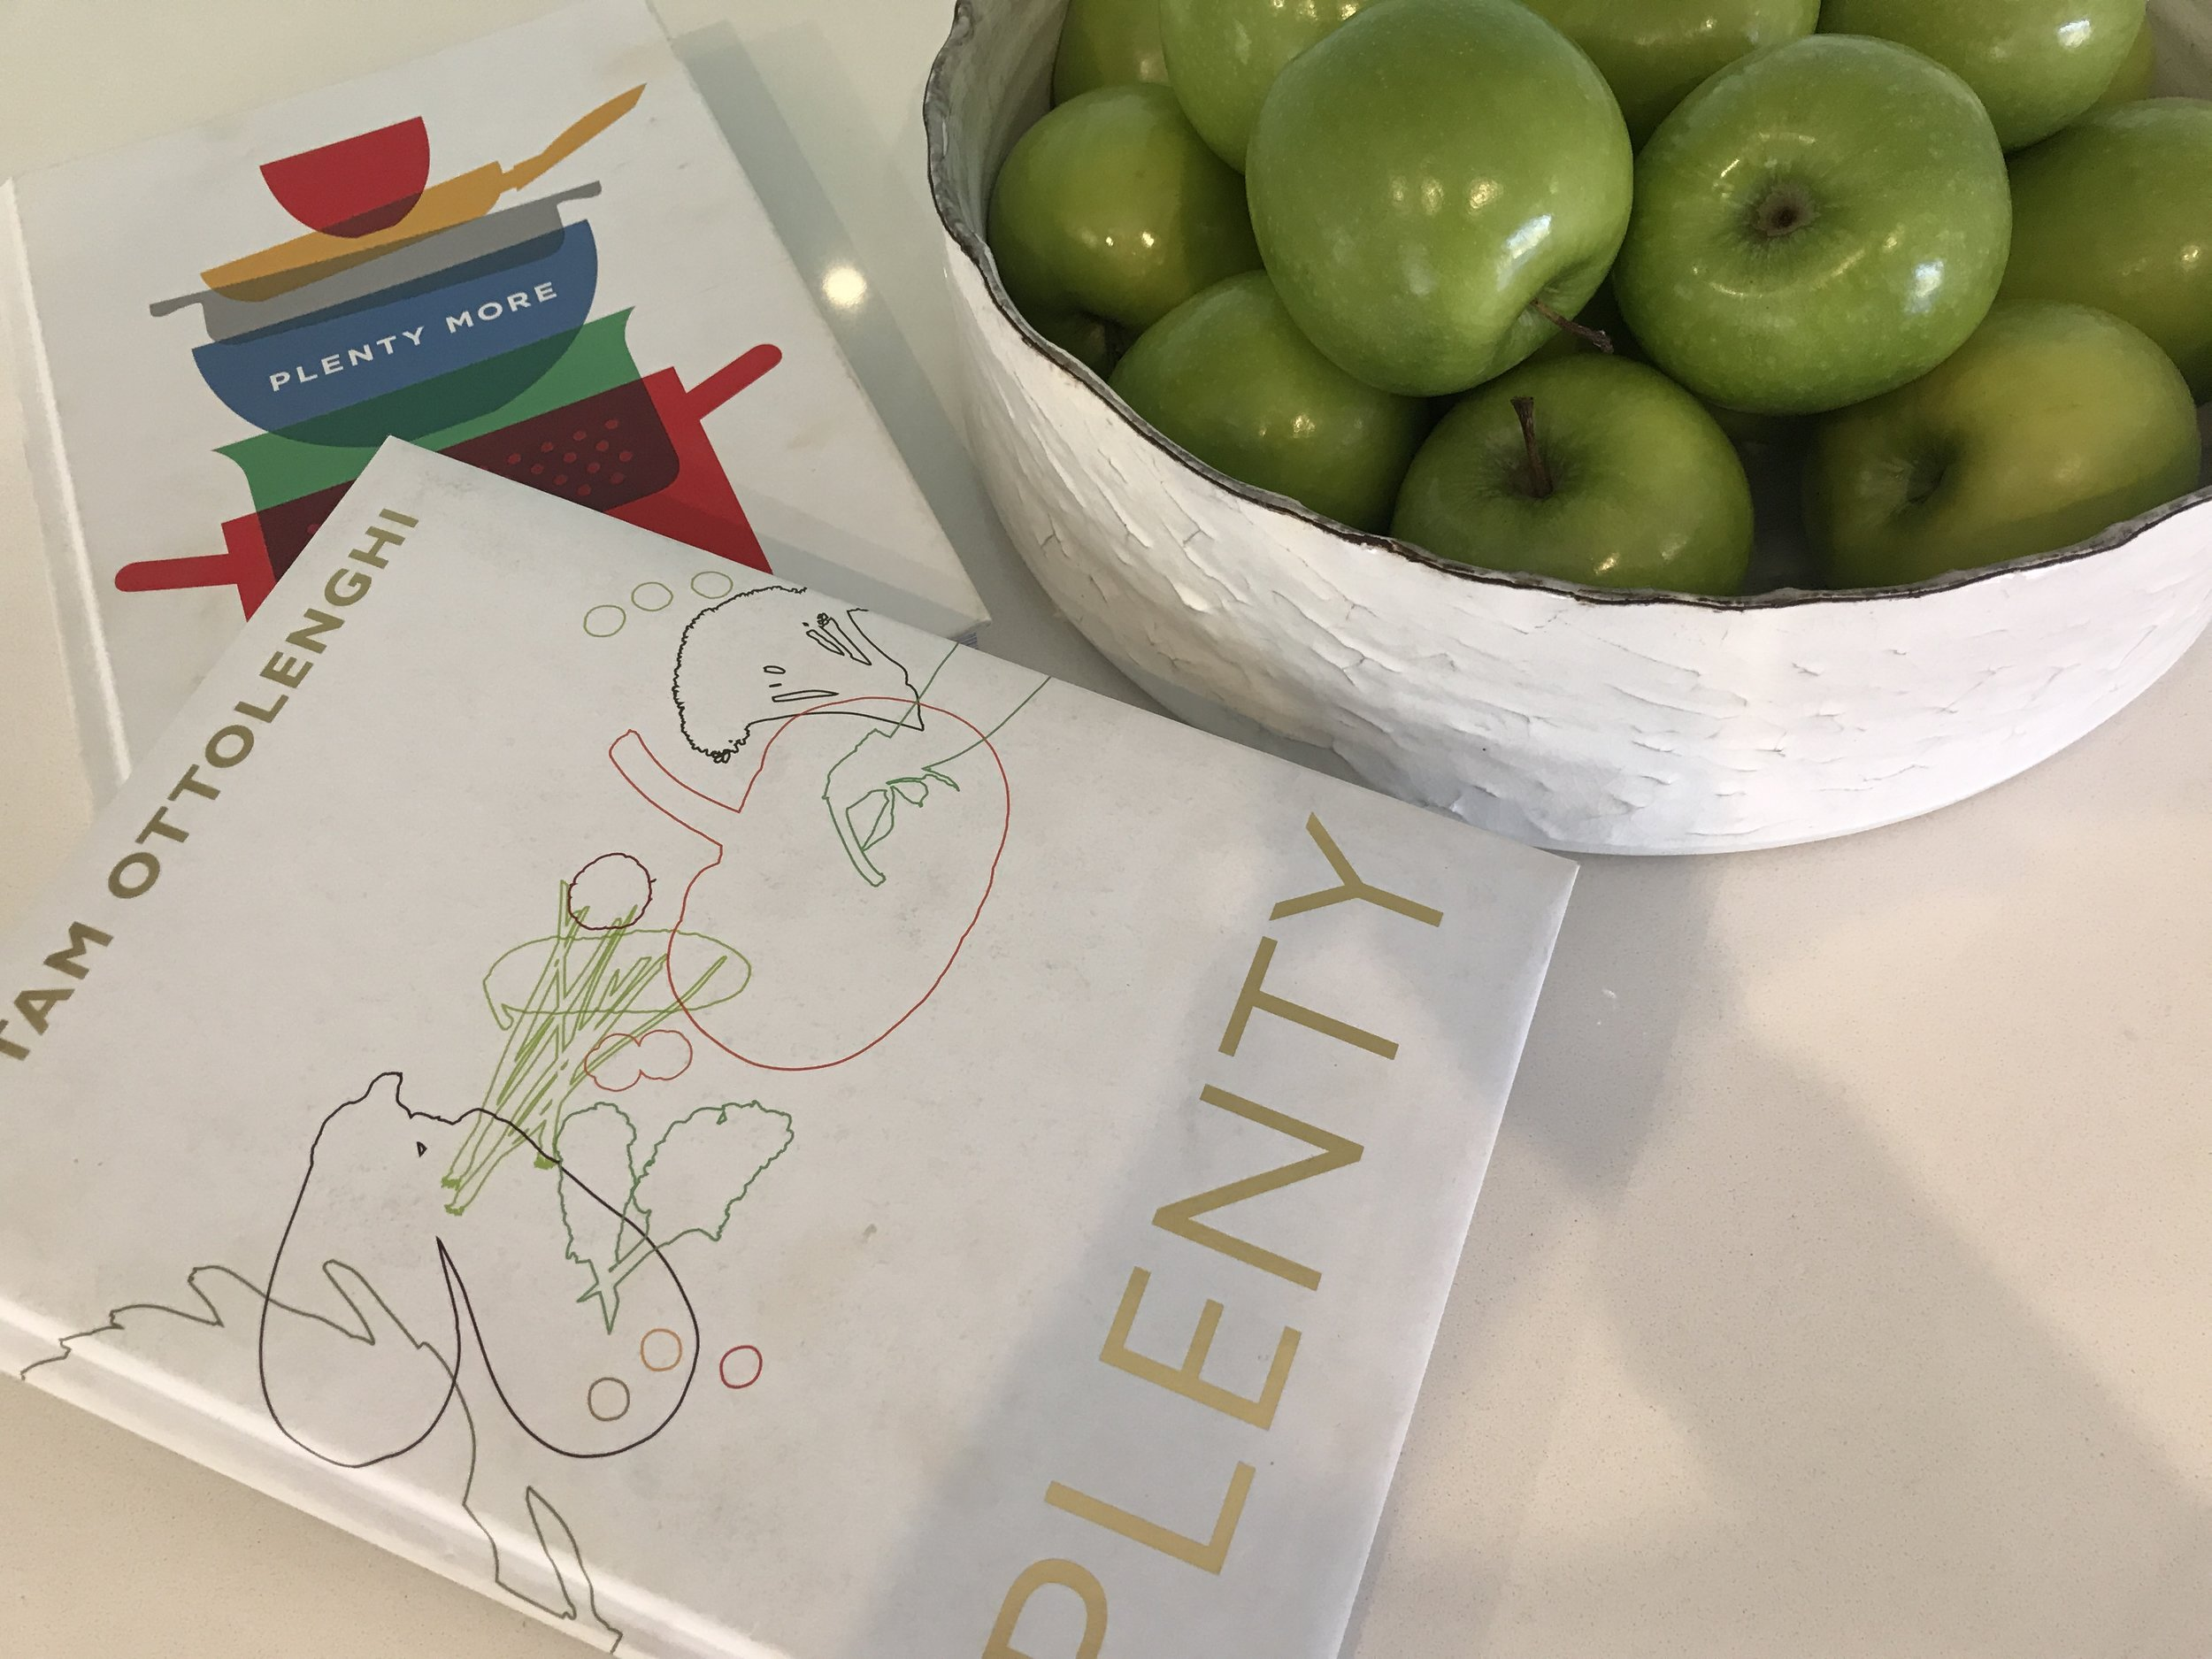 Two of my favorite vegetarian cookbooks, as you can see well used, Plenty and Plenty More by Yotam Ottolenghi. Vegetarian meals that are so full of flavour, you won't miss meat.